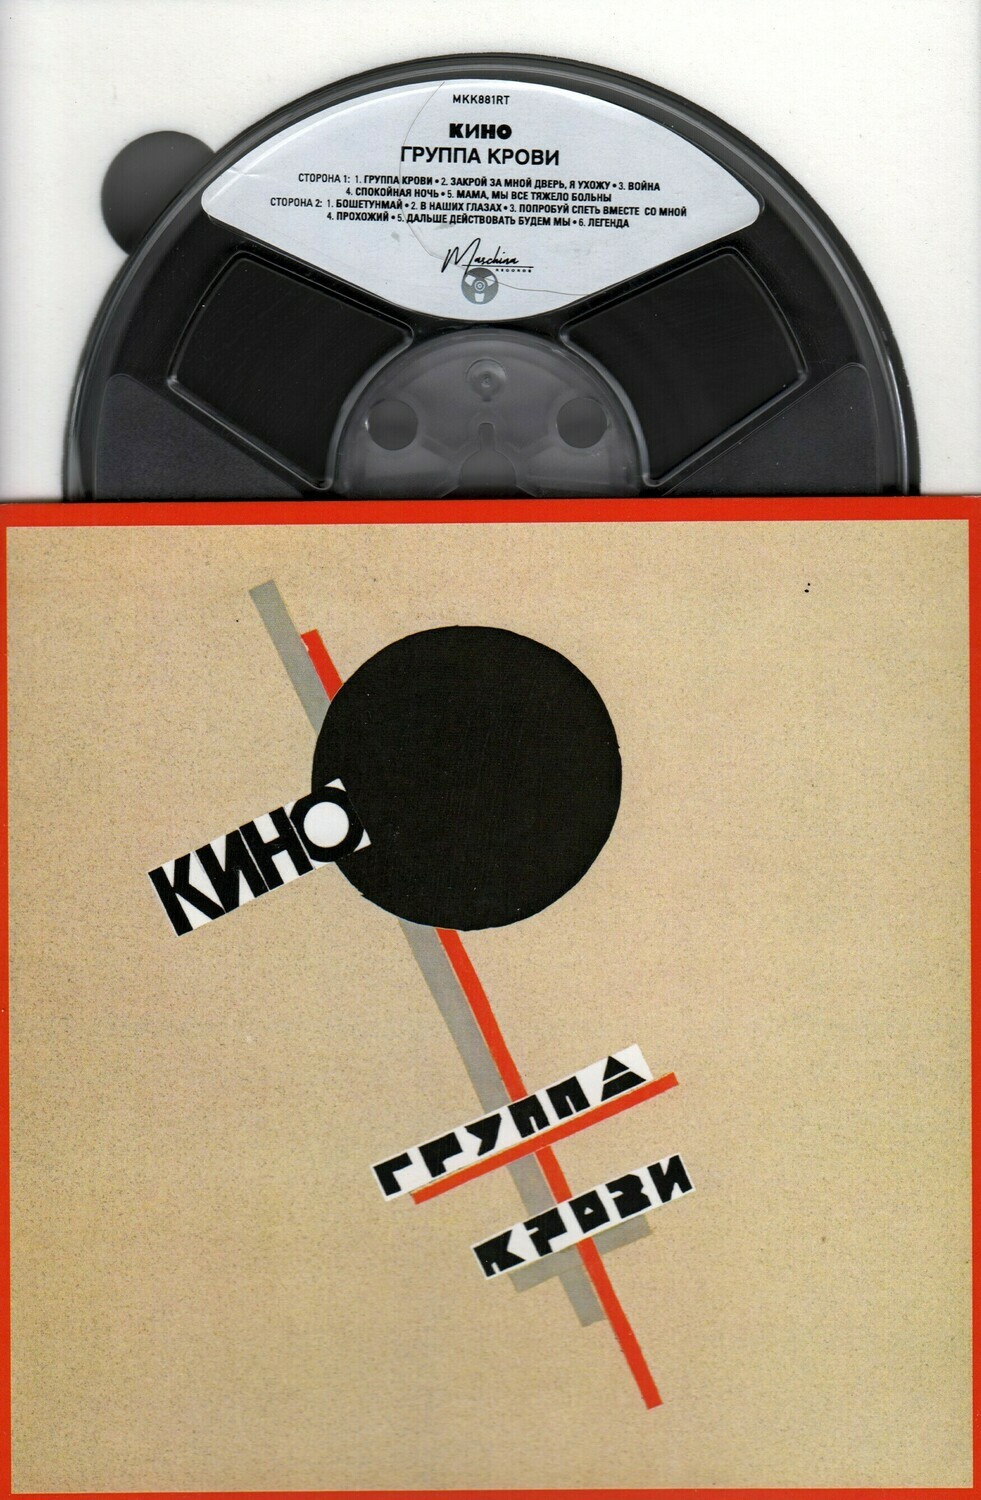 RR: КИНО — «Группа крови» (1988/2019) [Analog Copy LPR35 Reel-to-reel Edition]